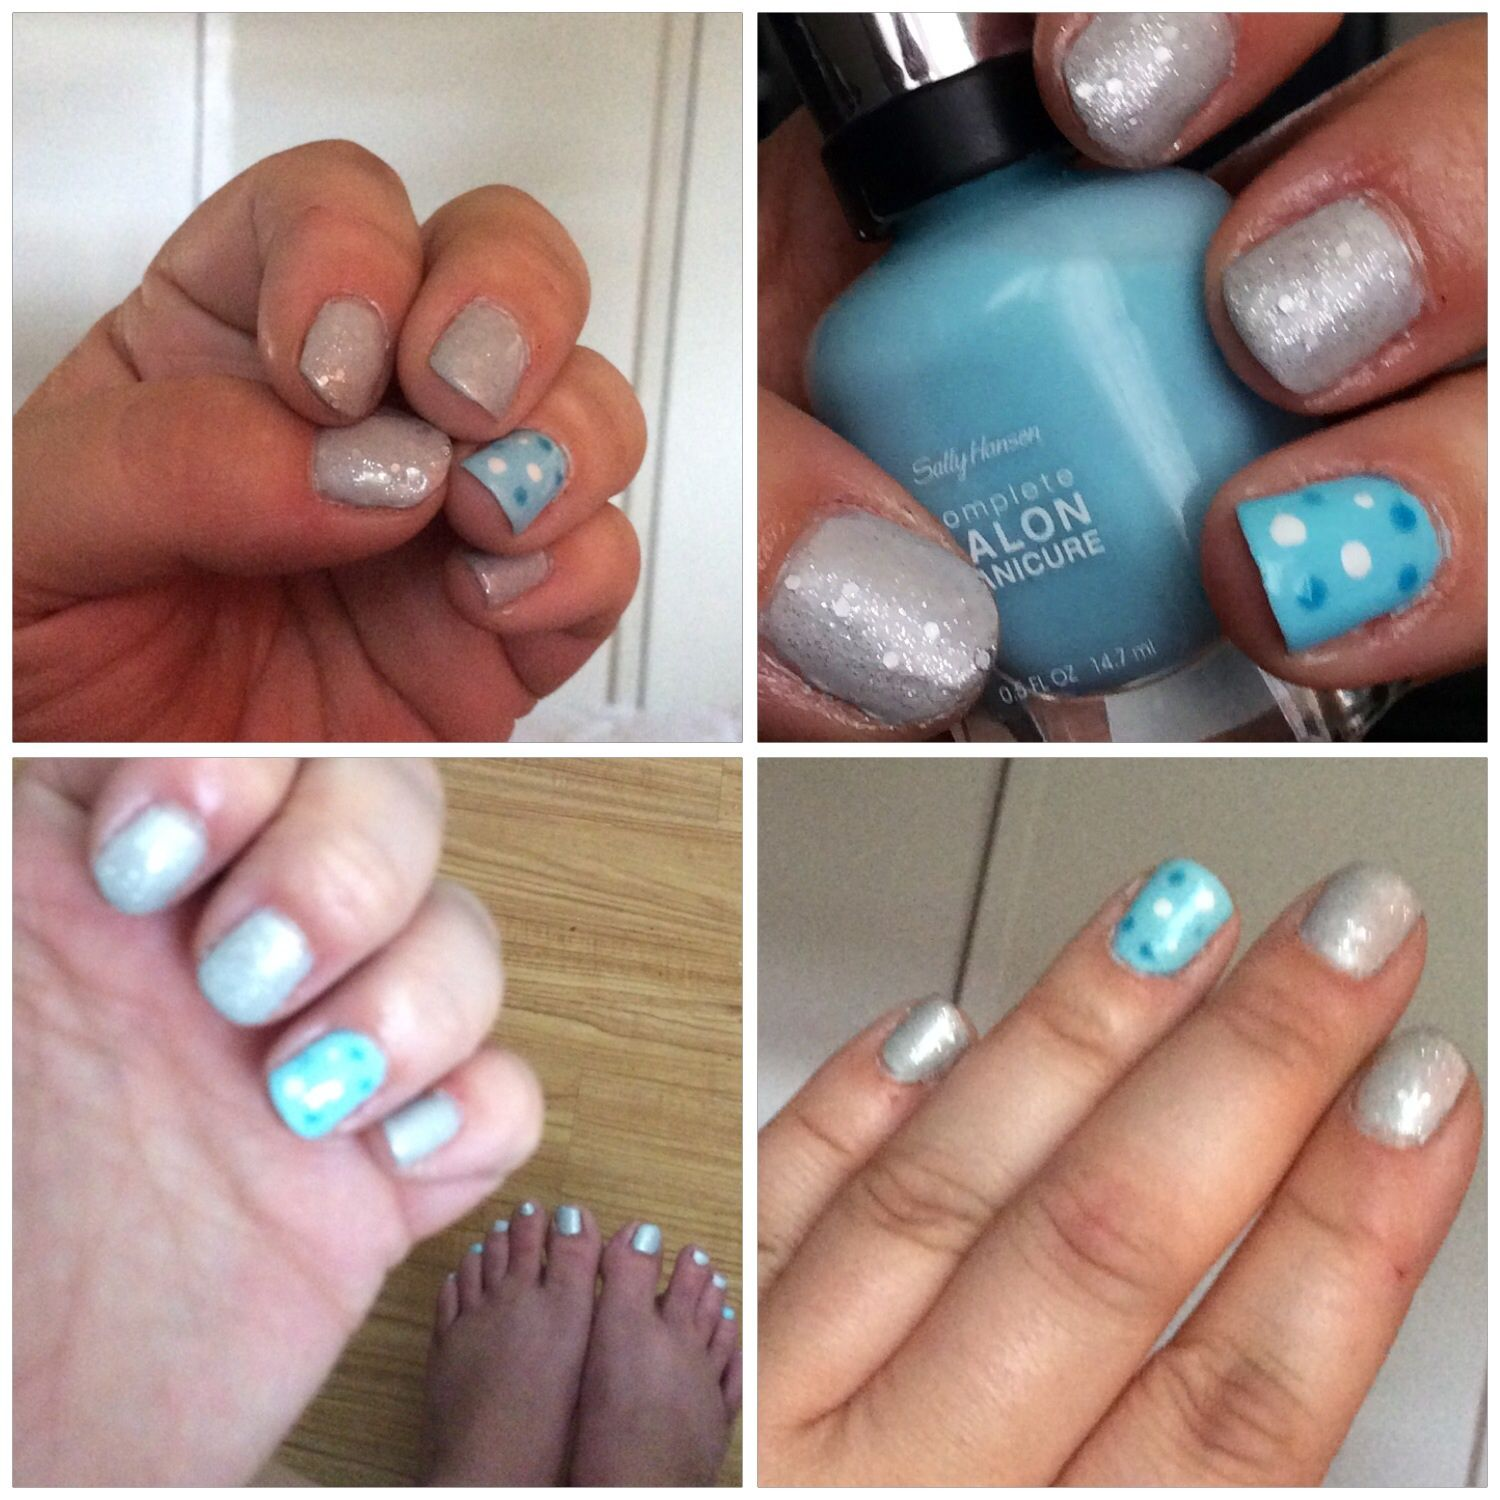 My nails in Sally hansen complete salon manicure in barracuda and